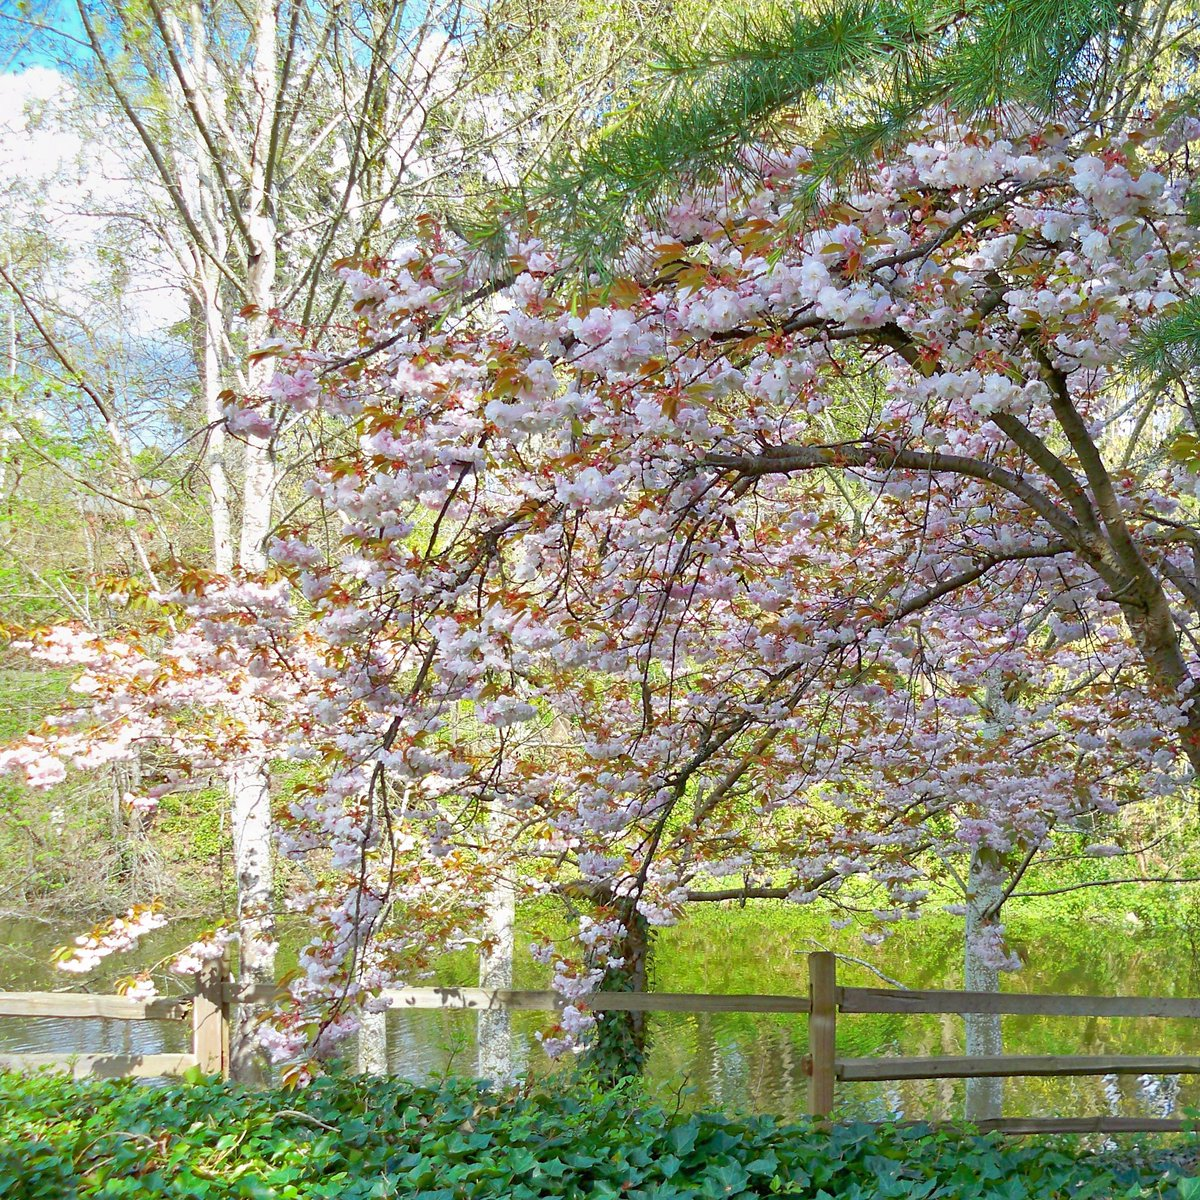 """""""Adopt the pace of nature. Her secret is patience."""" _Ralph Waldo Emerson  #trees #springawakening #naturephotography #natureslover #naturemiracles #naturevibrations  #naturelovers  #gardens  #Flowers https://t.co/9FfRpvF259"""